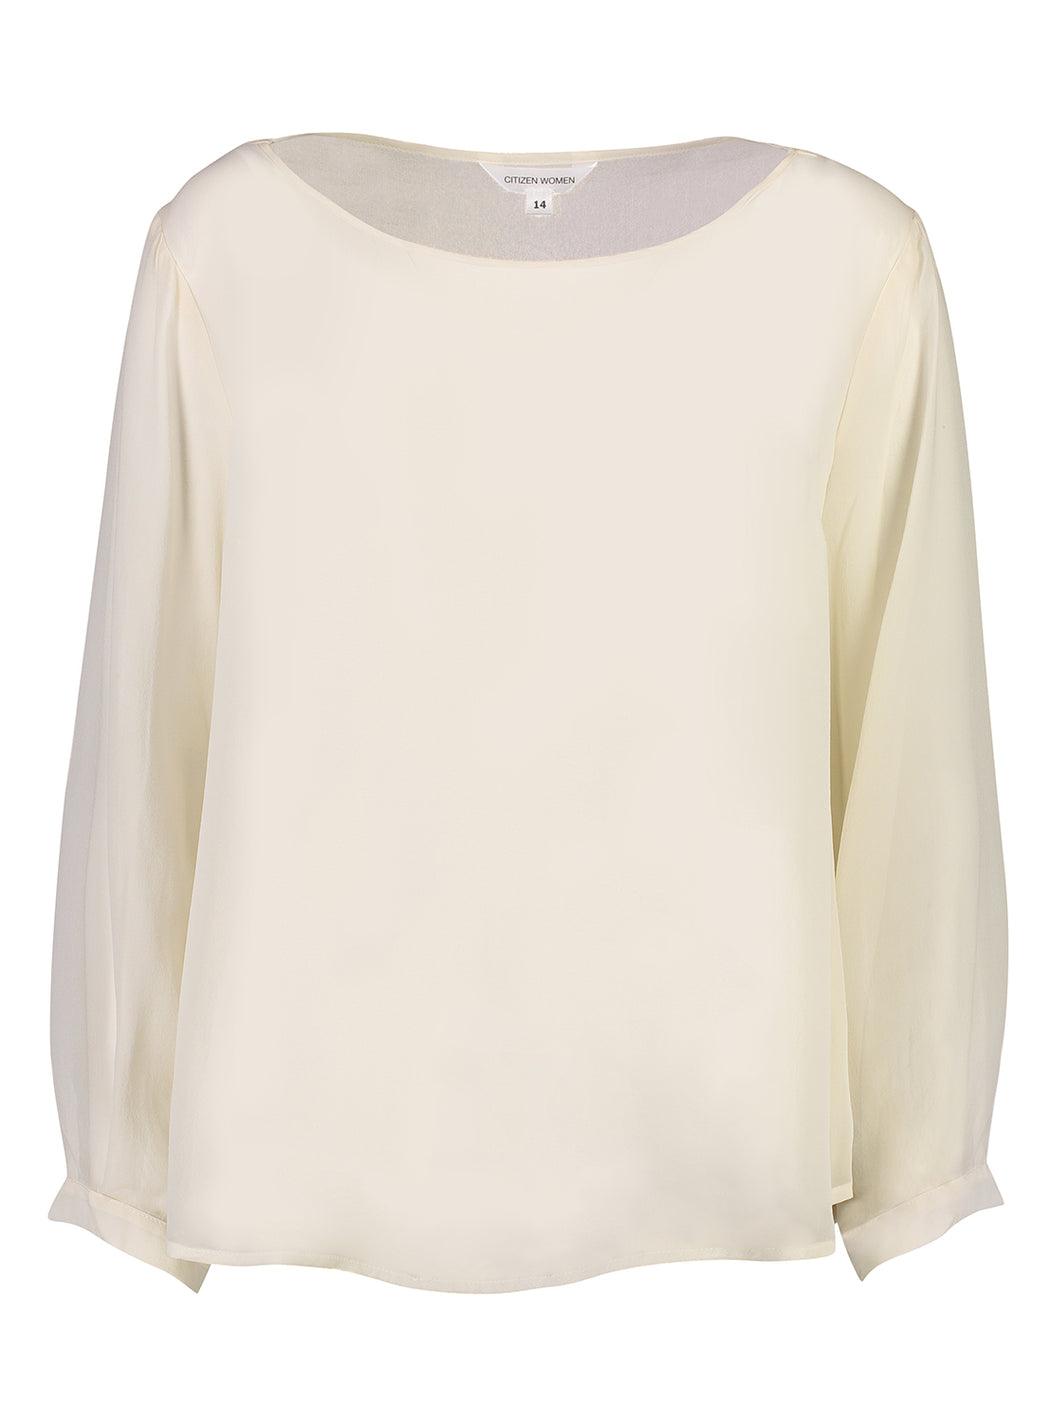 Charter | Boat Neck Top | Ivory | Silk